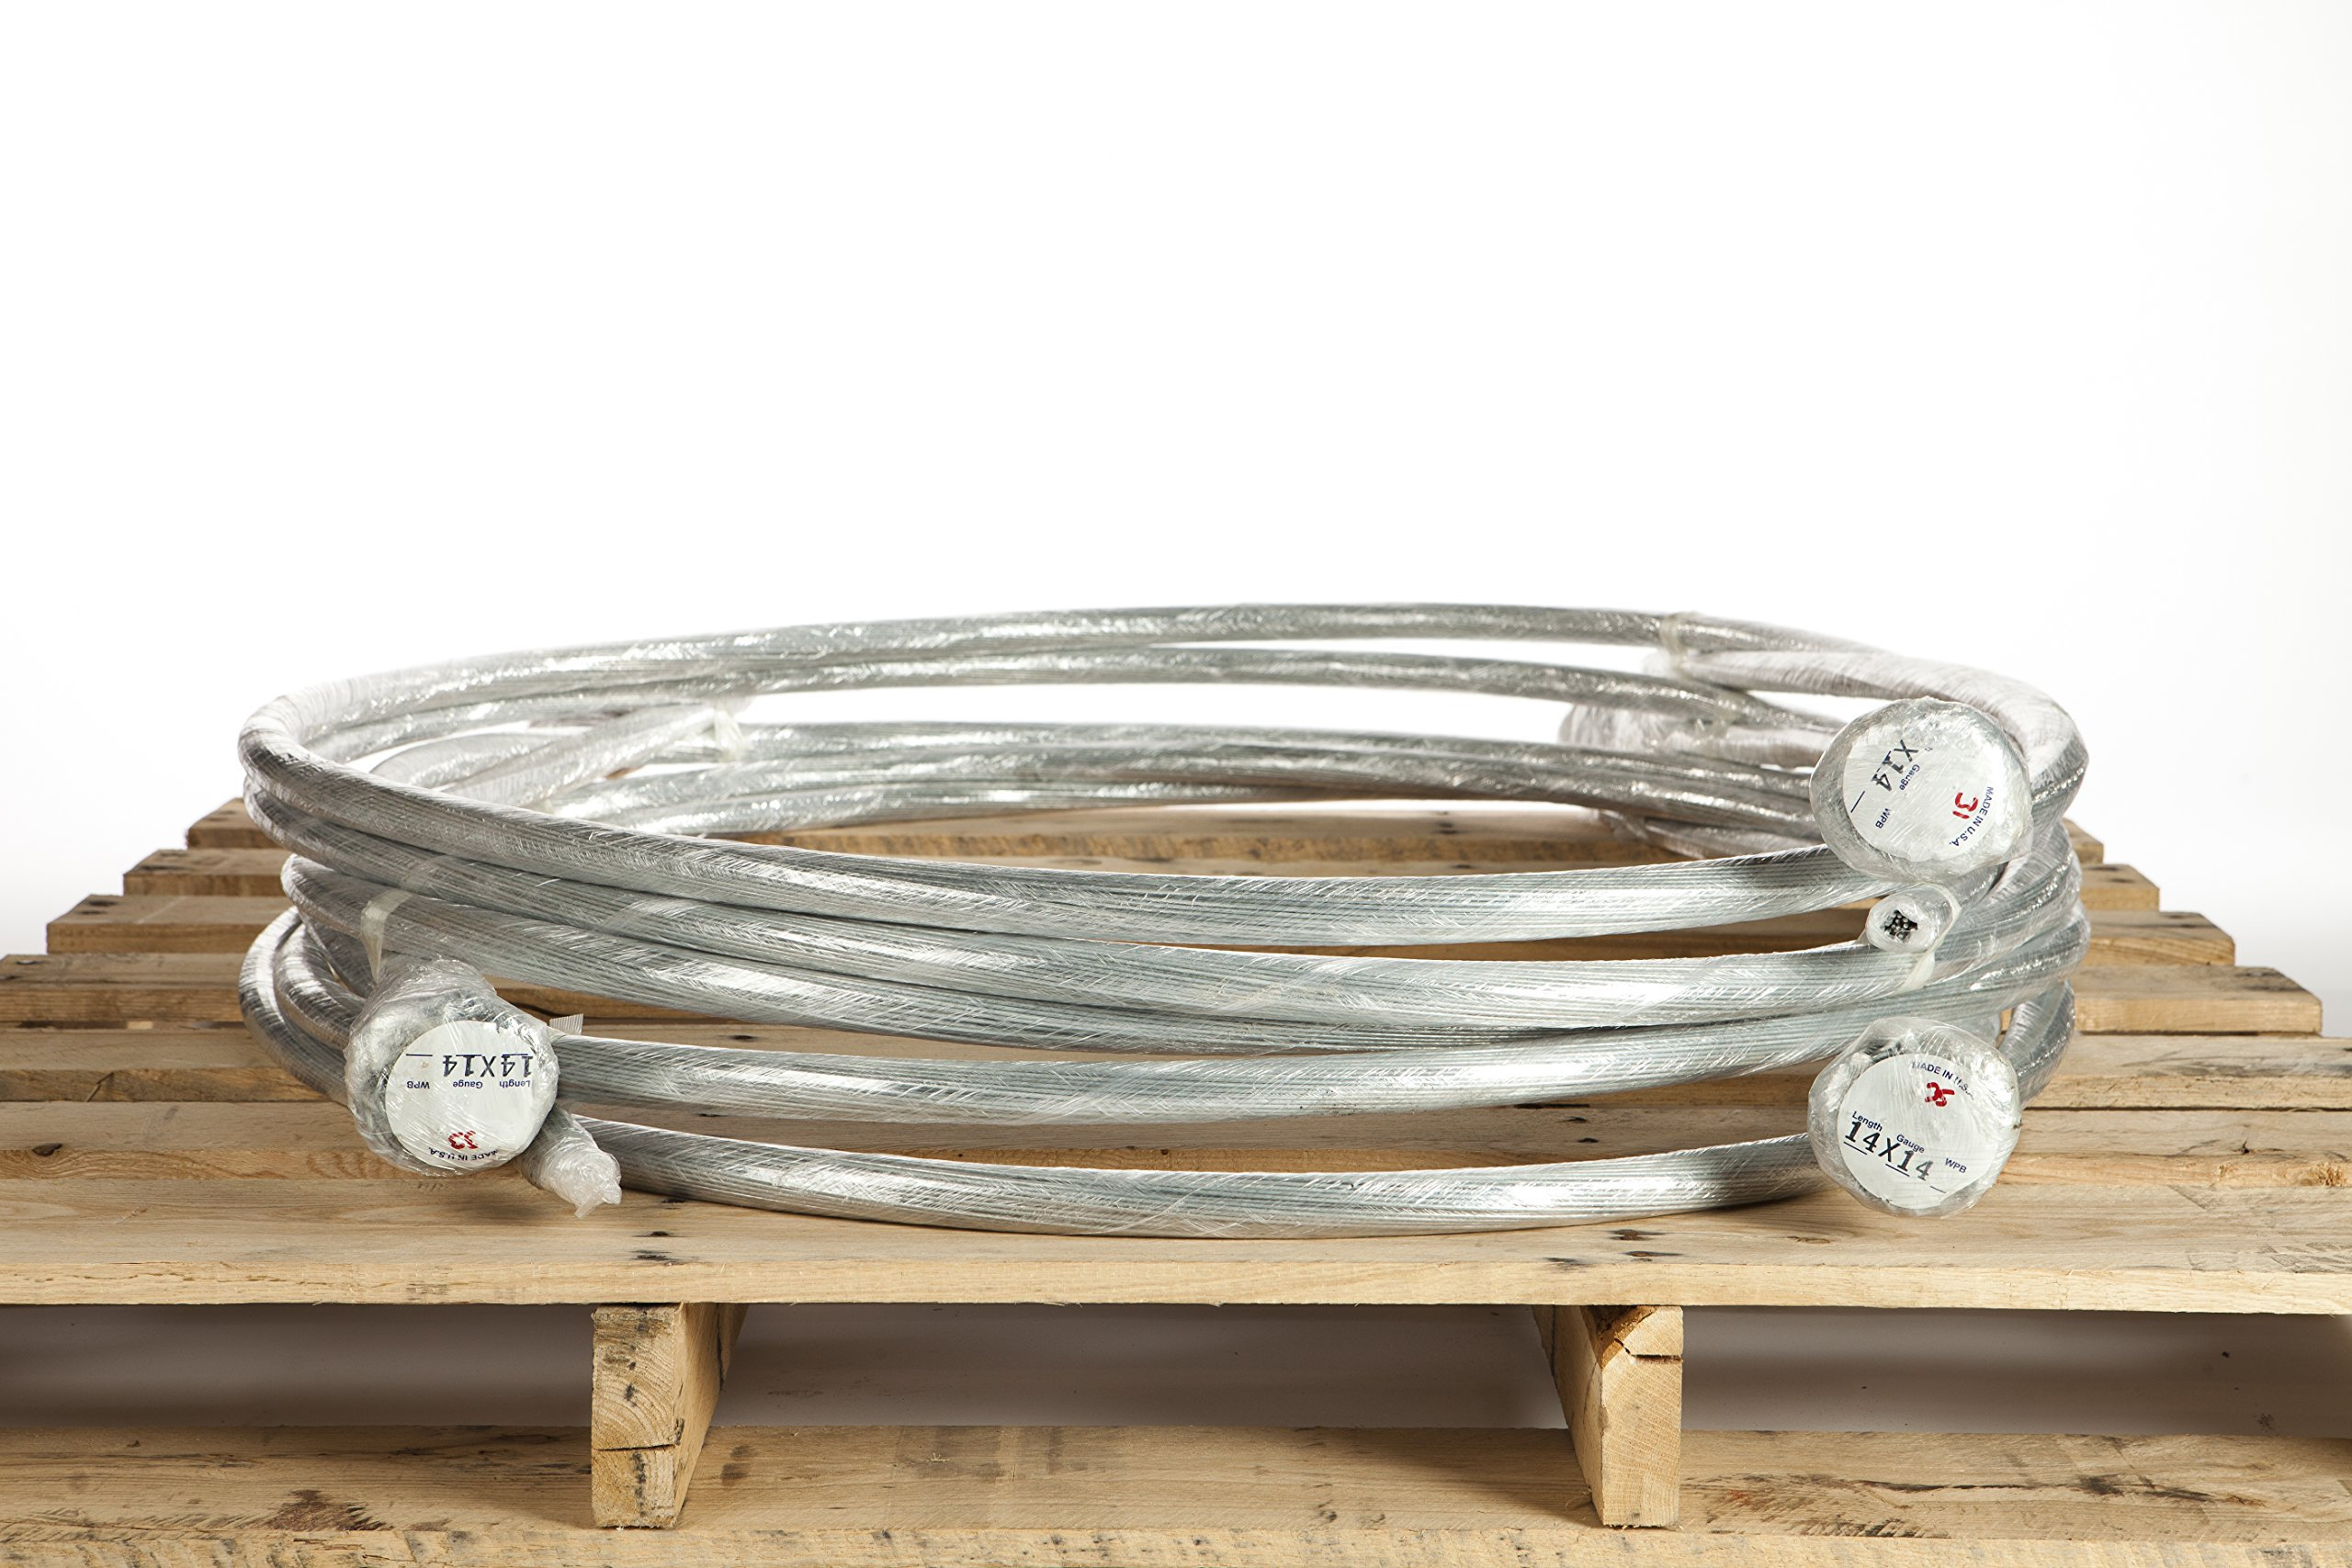 Highest Quality USA Made 14 Gauge 14FT Galvanized Single Loop Baling Wire in Bundles of 125 Pieces